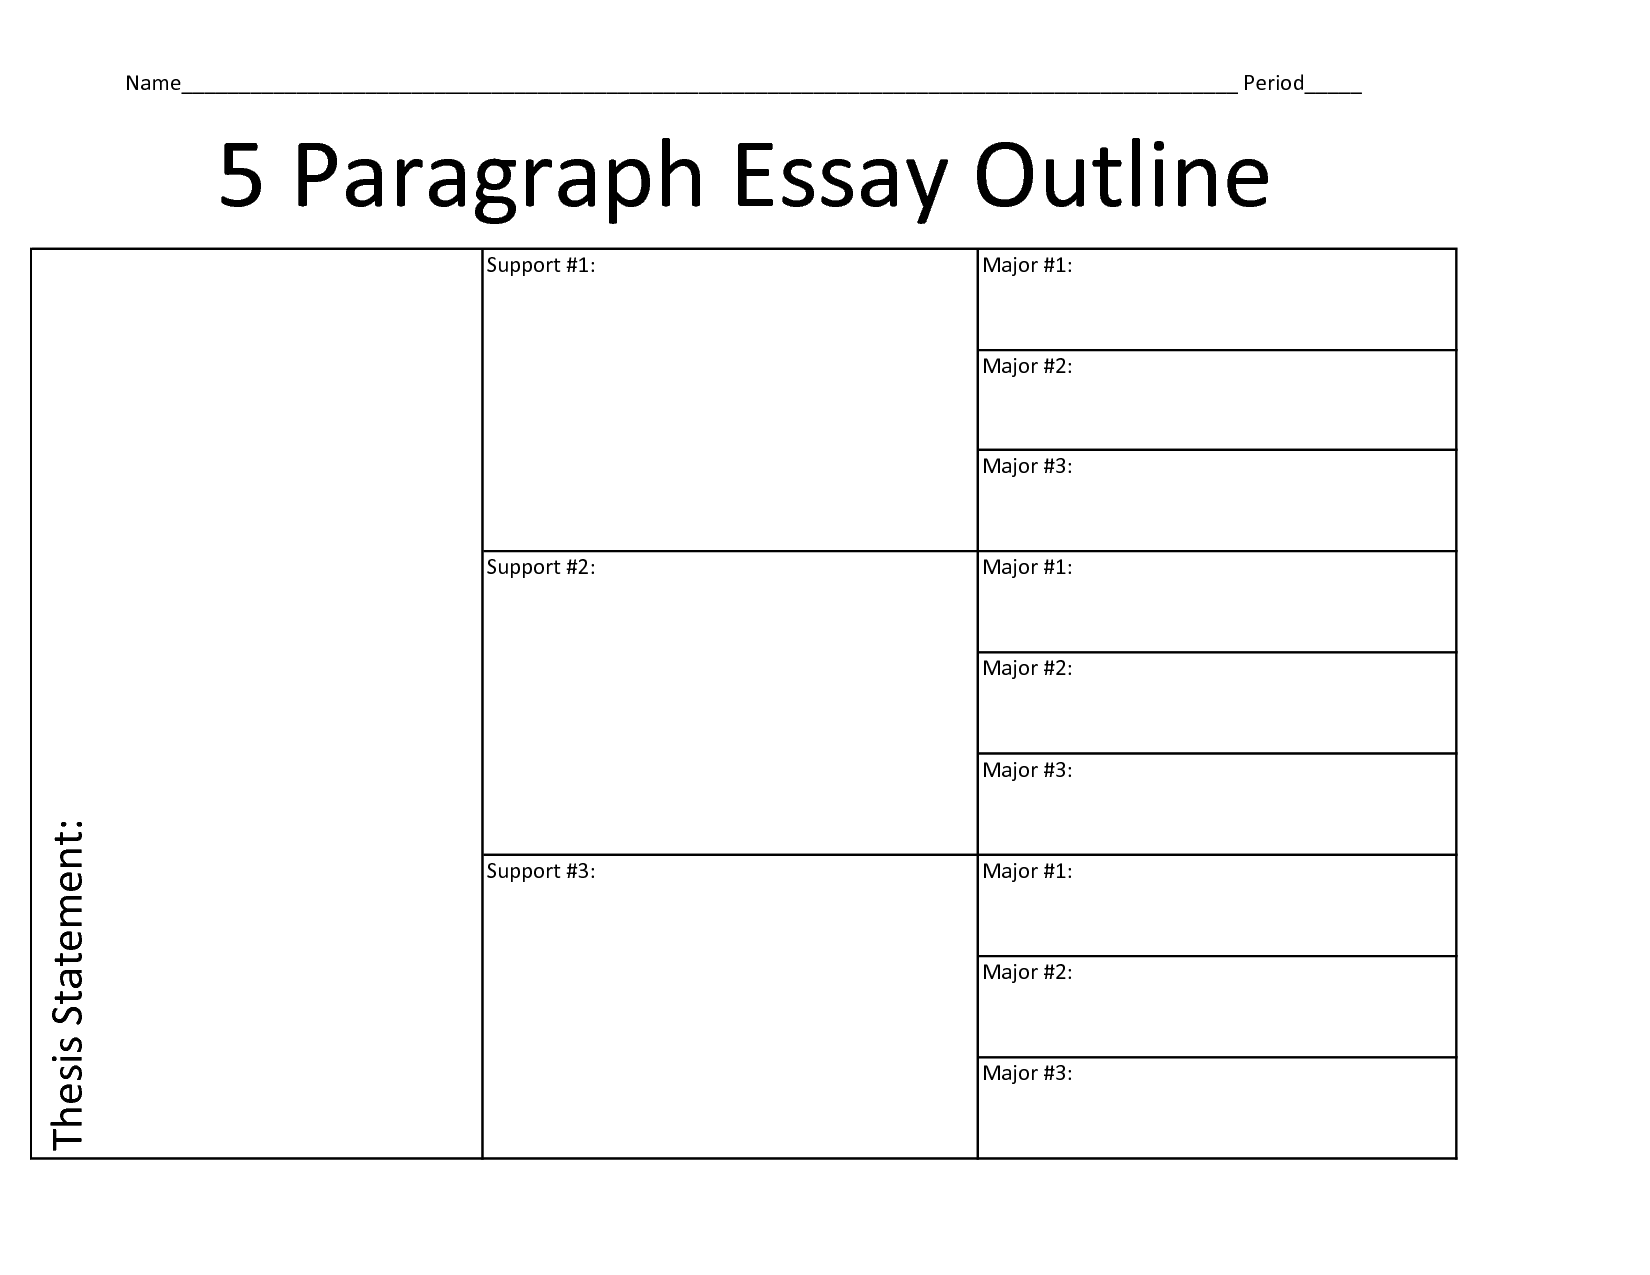 012 Paragraph Essay Graphic Organizer Example Organizers Executive Functioning Mr Brown039s Outline L Sensational 5 Five High School Argumentative Pdf Organizer-hamburger Full